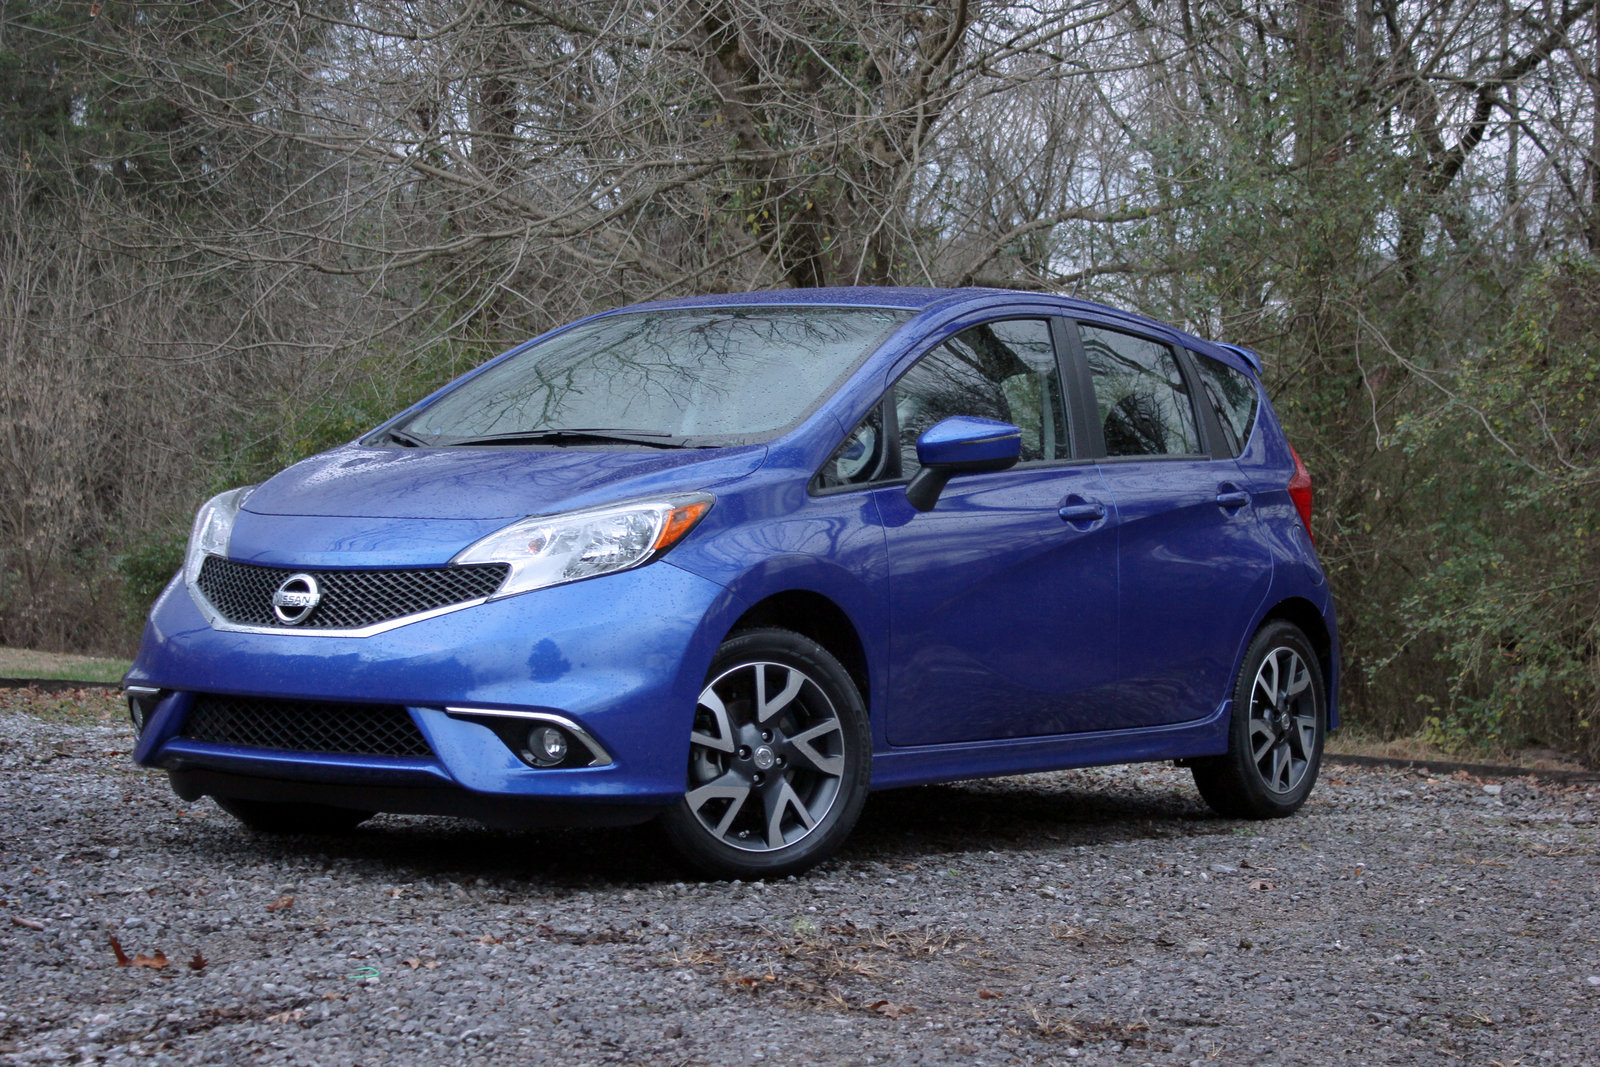 2015 nissan versa note sr driven picture 585802 car review top speed. Black Bedroom Furniture Sets. Home Design Ideas